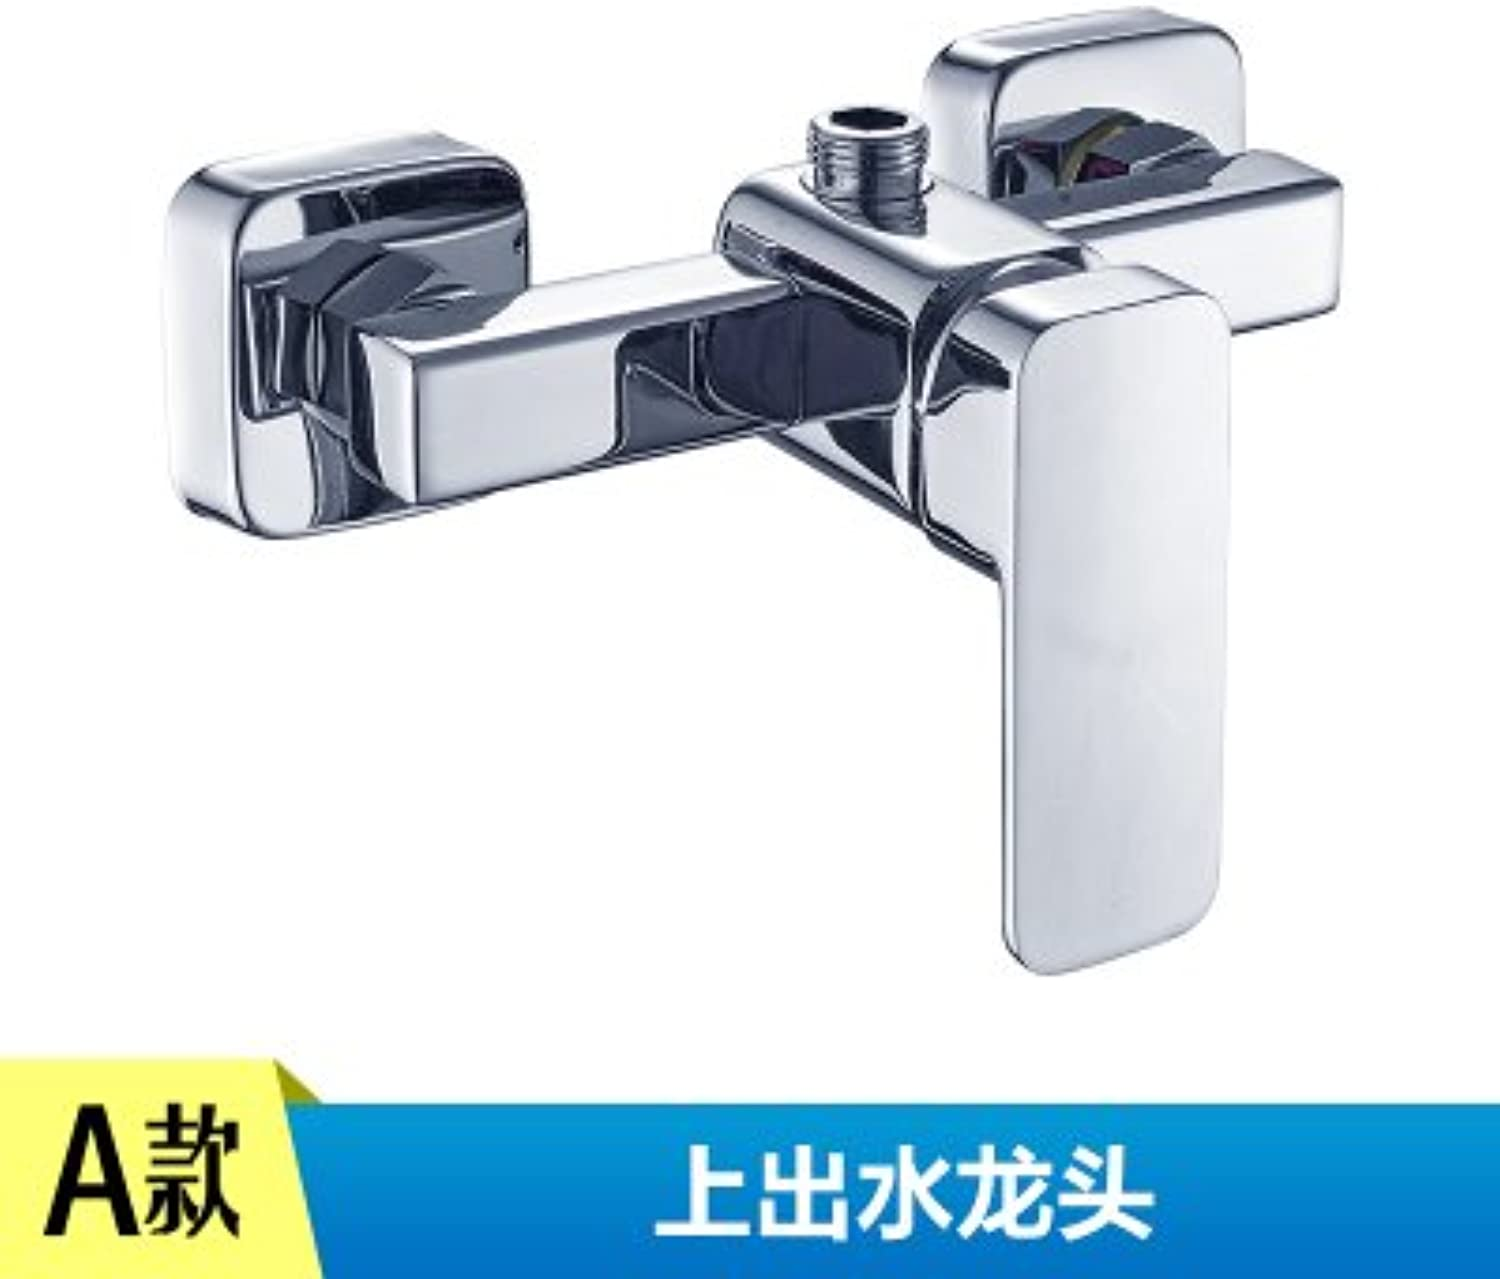 NewBorn Faucet Kitchen Or Bathroom Sink Mixer Tap Water Tap Hot And Cold Dish Pool Water Water Tap Dish Washingbrass Valve Body To redate The Water Tap Hot And Cold, Seven Field Bend + Two 80 Cm Hose